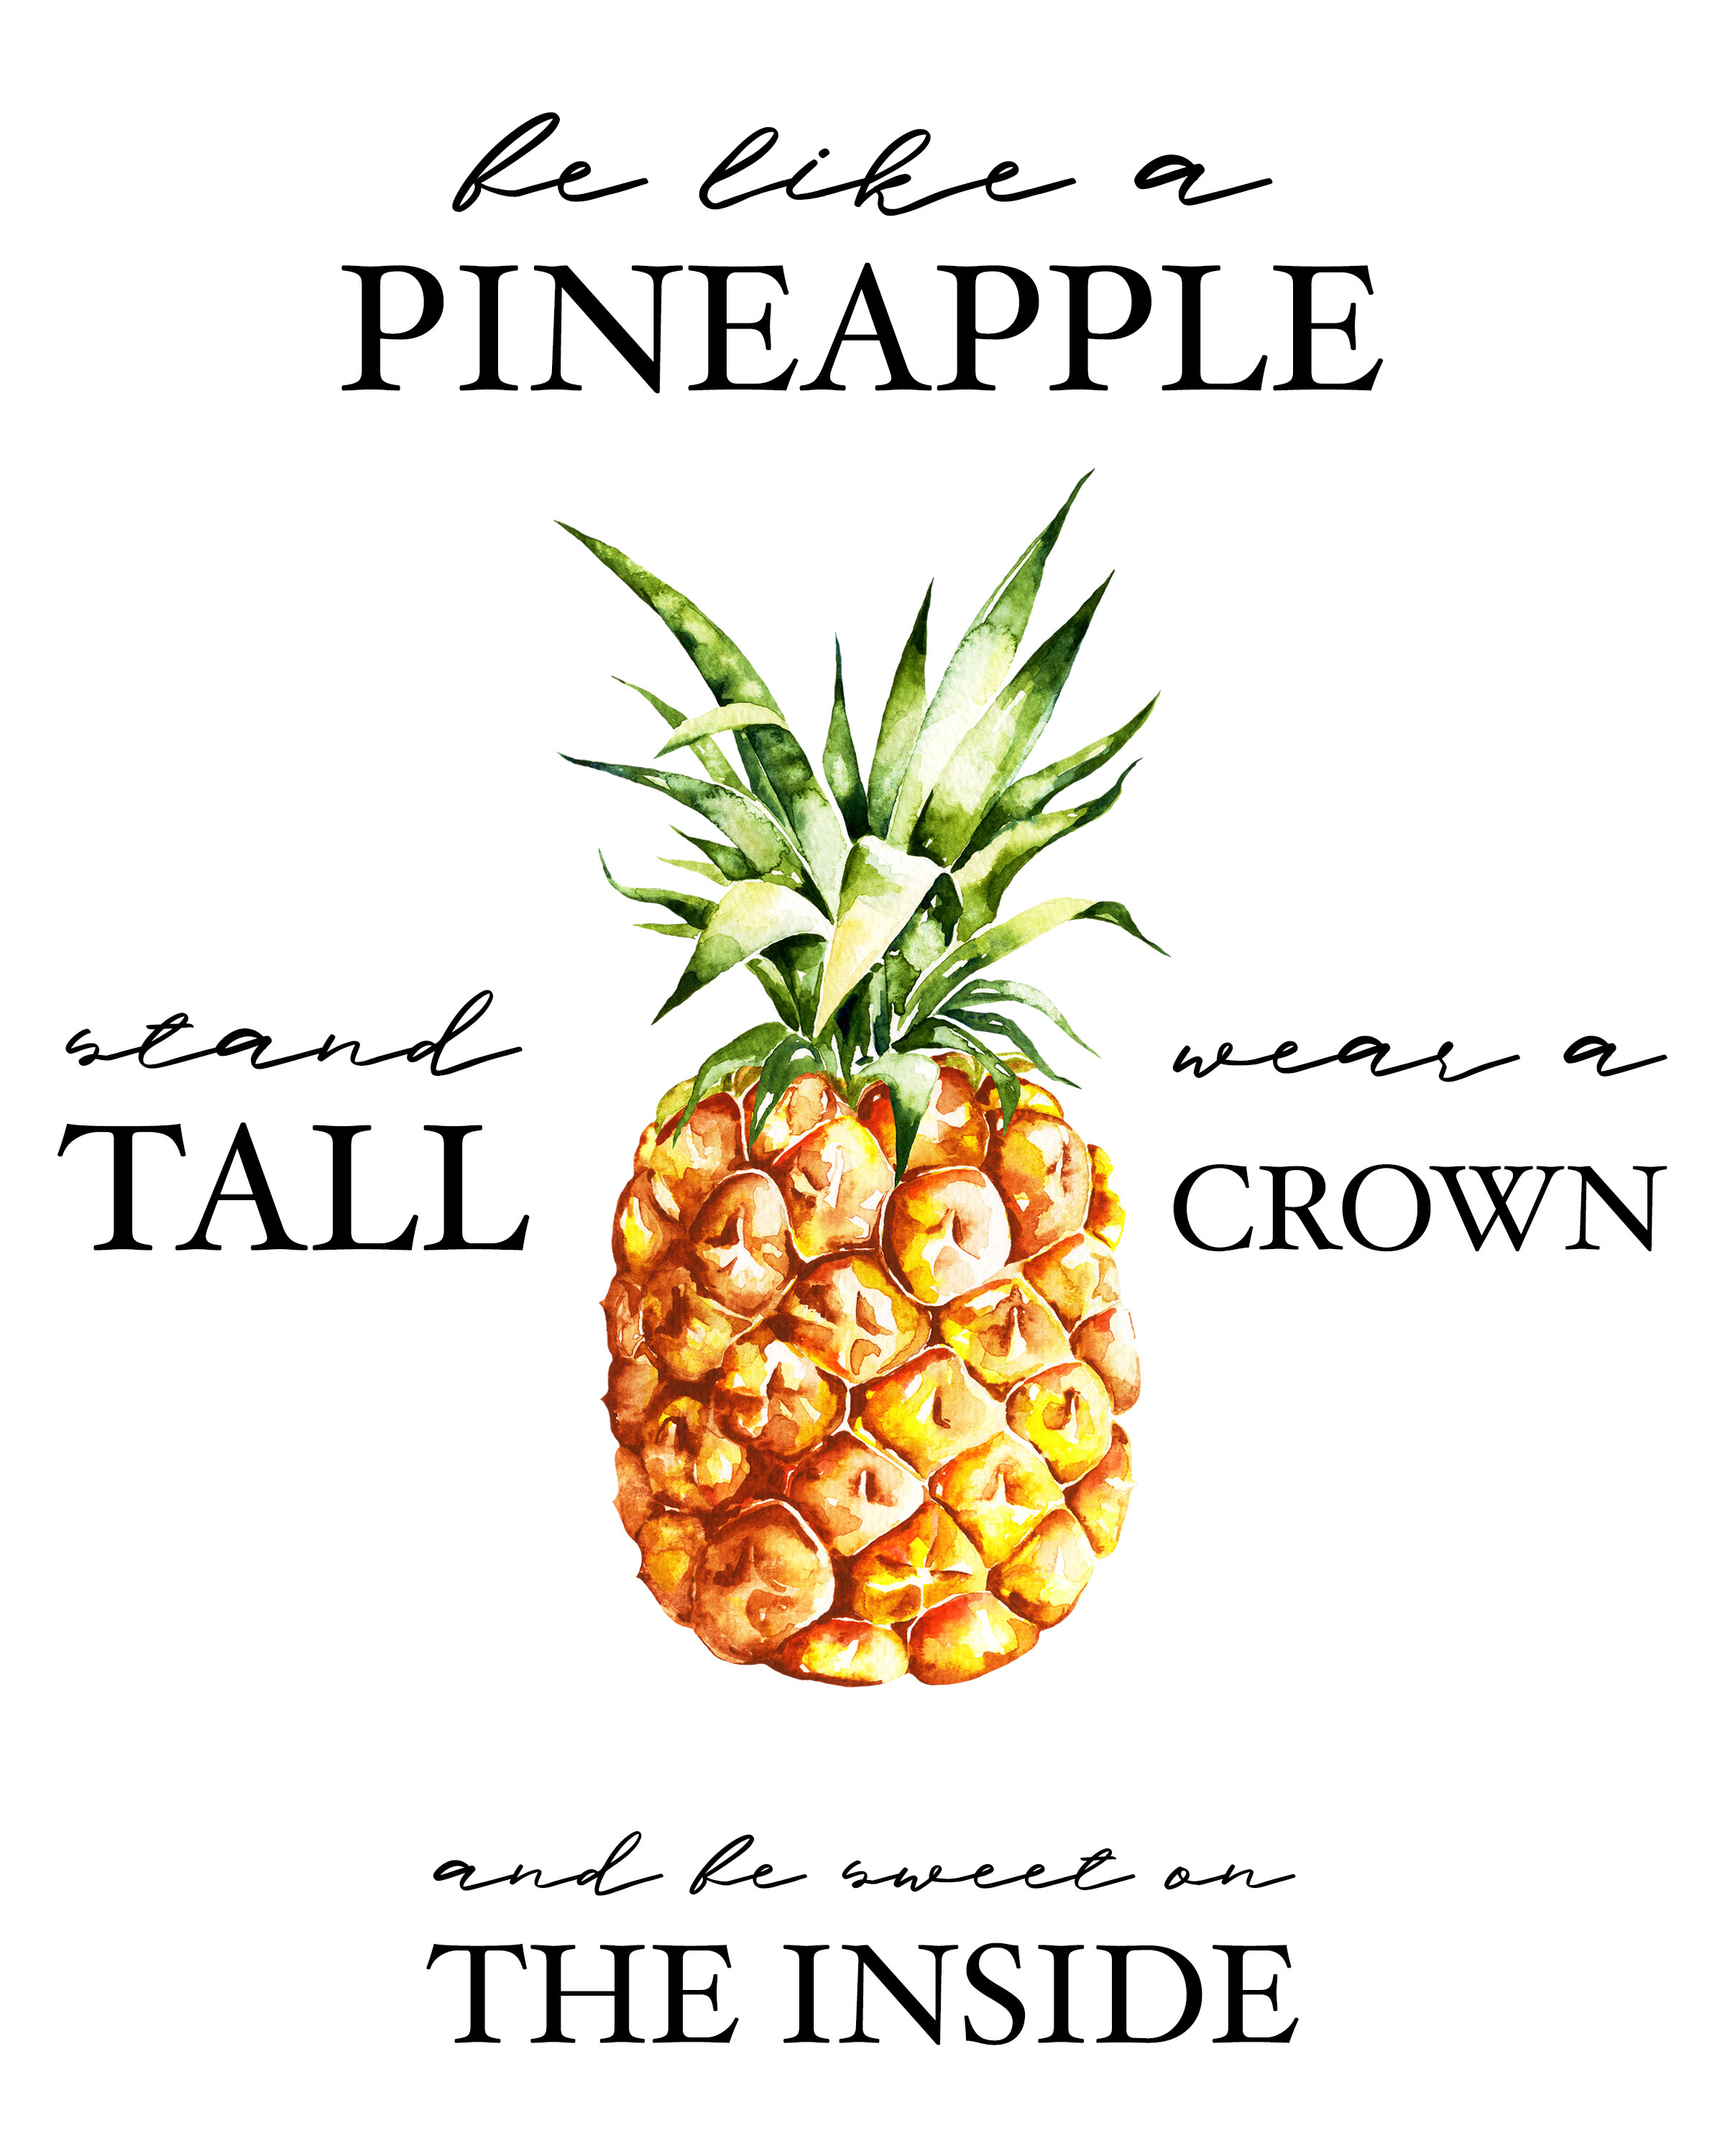 photograph regarding Printable Pineapple named No cost Printable Pineapple Wall Artwork - The Cottage Sector